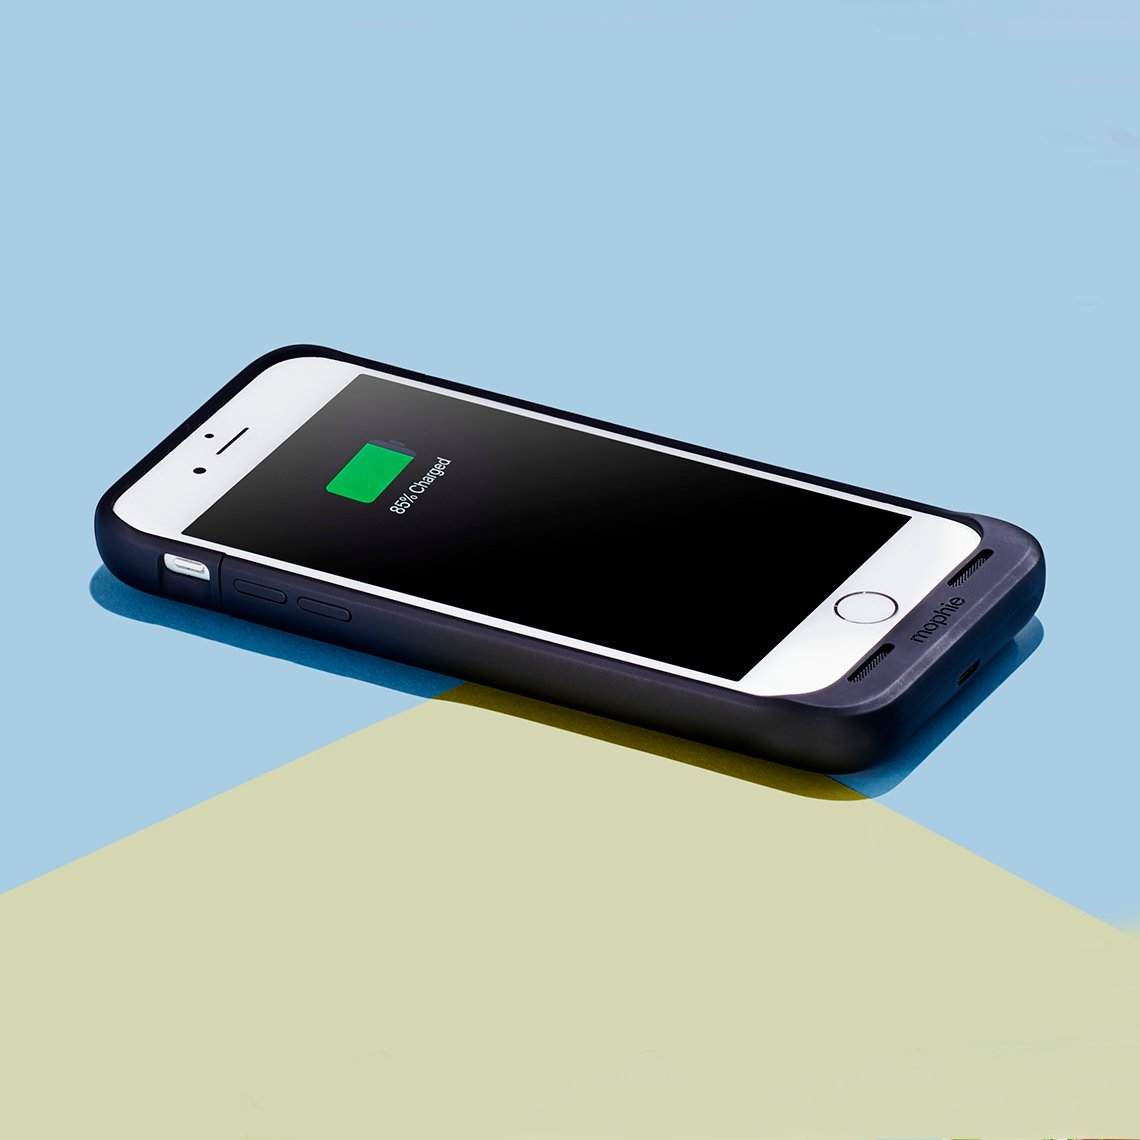 A charging device that snaps on to the back of a cell phone